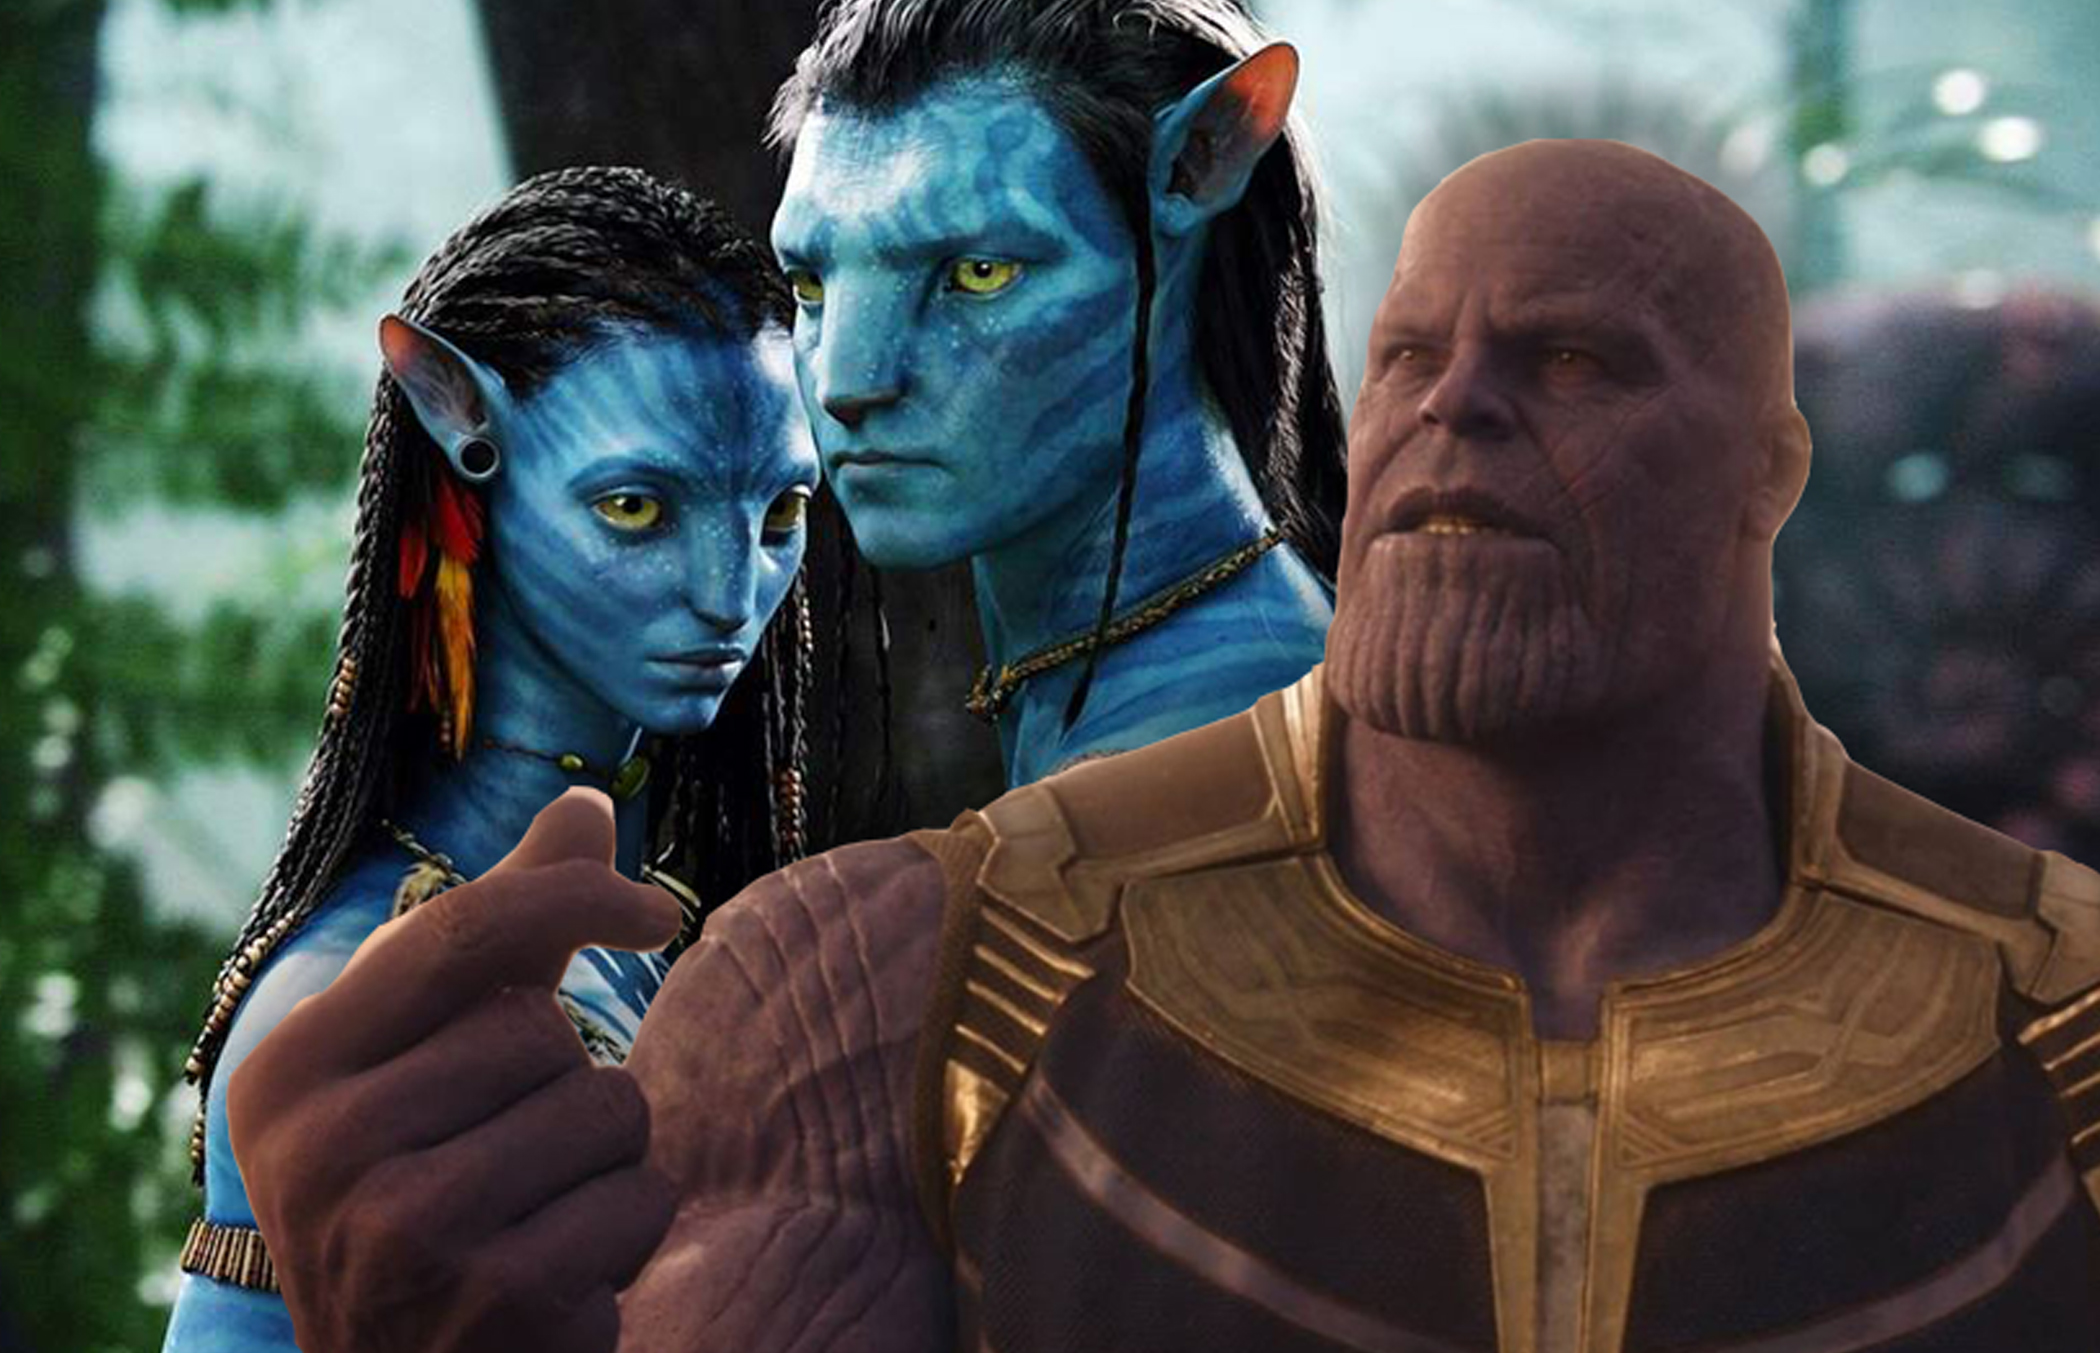 Endgame Surpasses Avatar at the Domestic Box Office! - NERDBOT